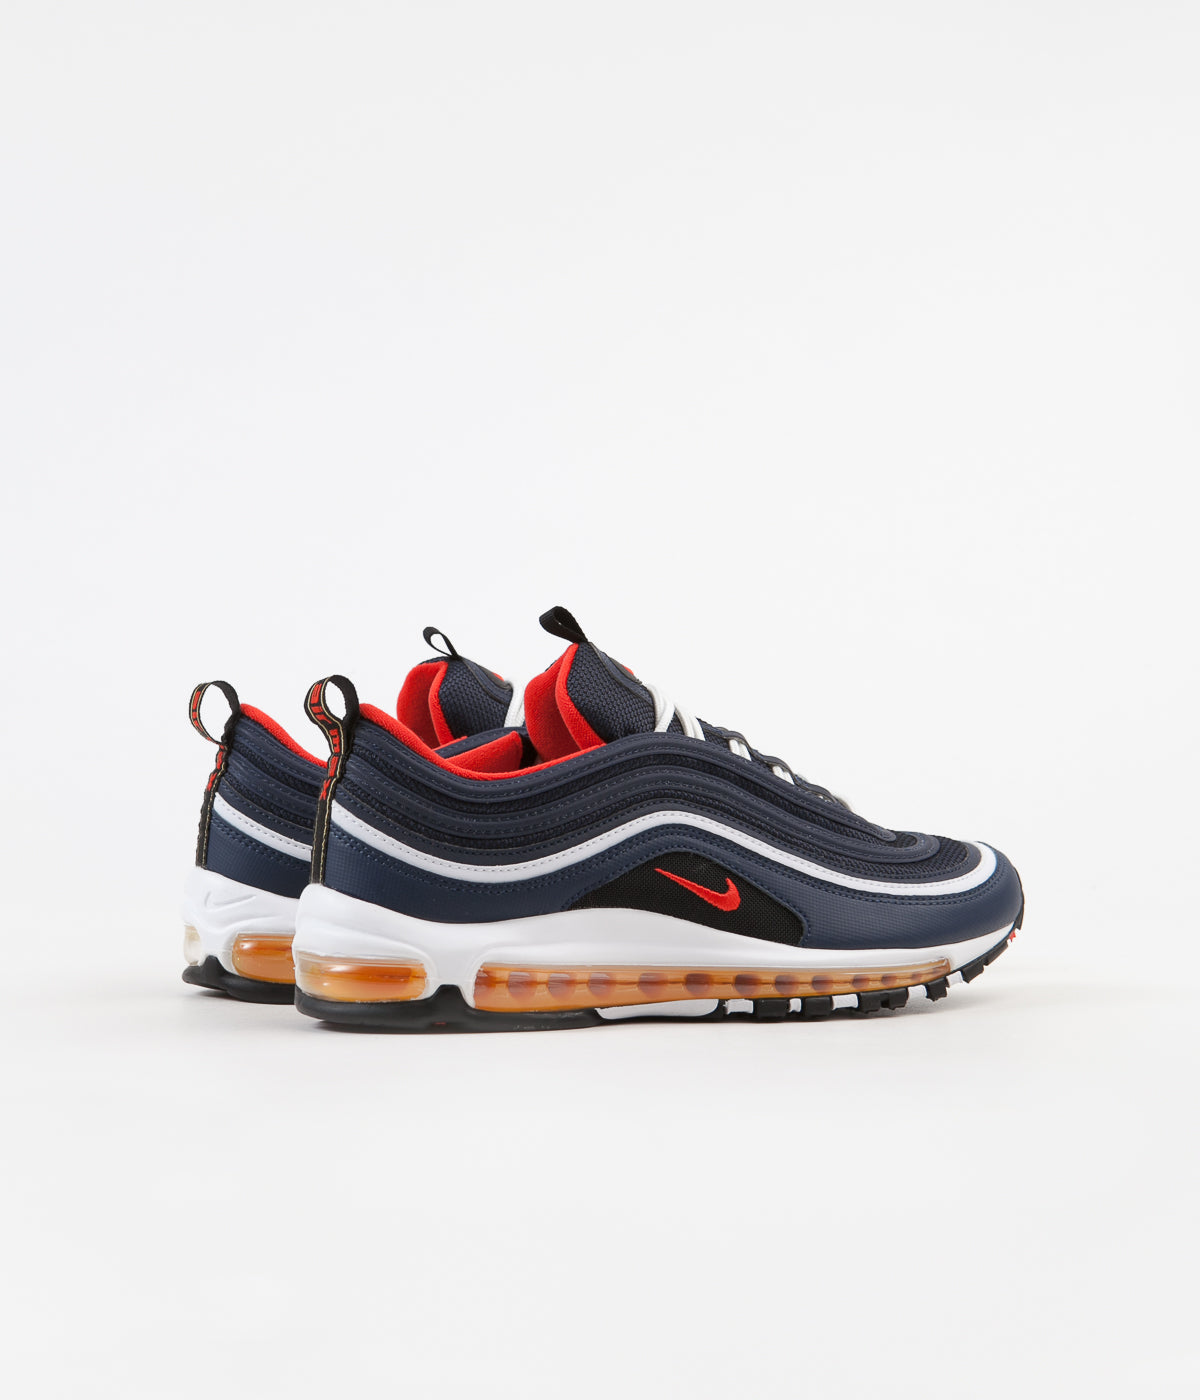 detailed look 7ca20 d2d4a Nike Air Max 97 Shoes - Midnight Navy / Habanero Red - Black ...